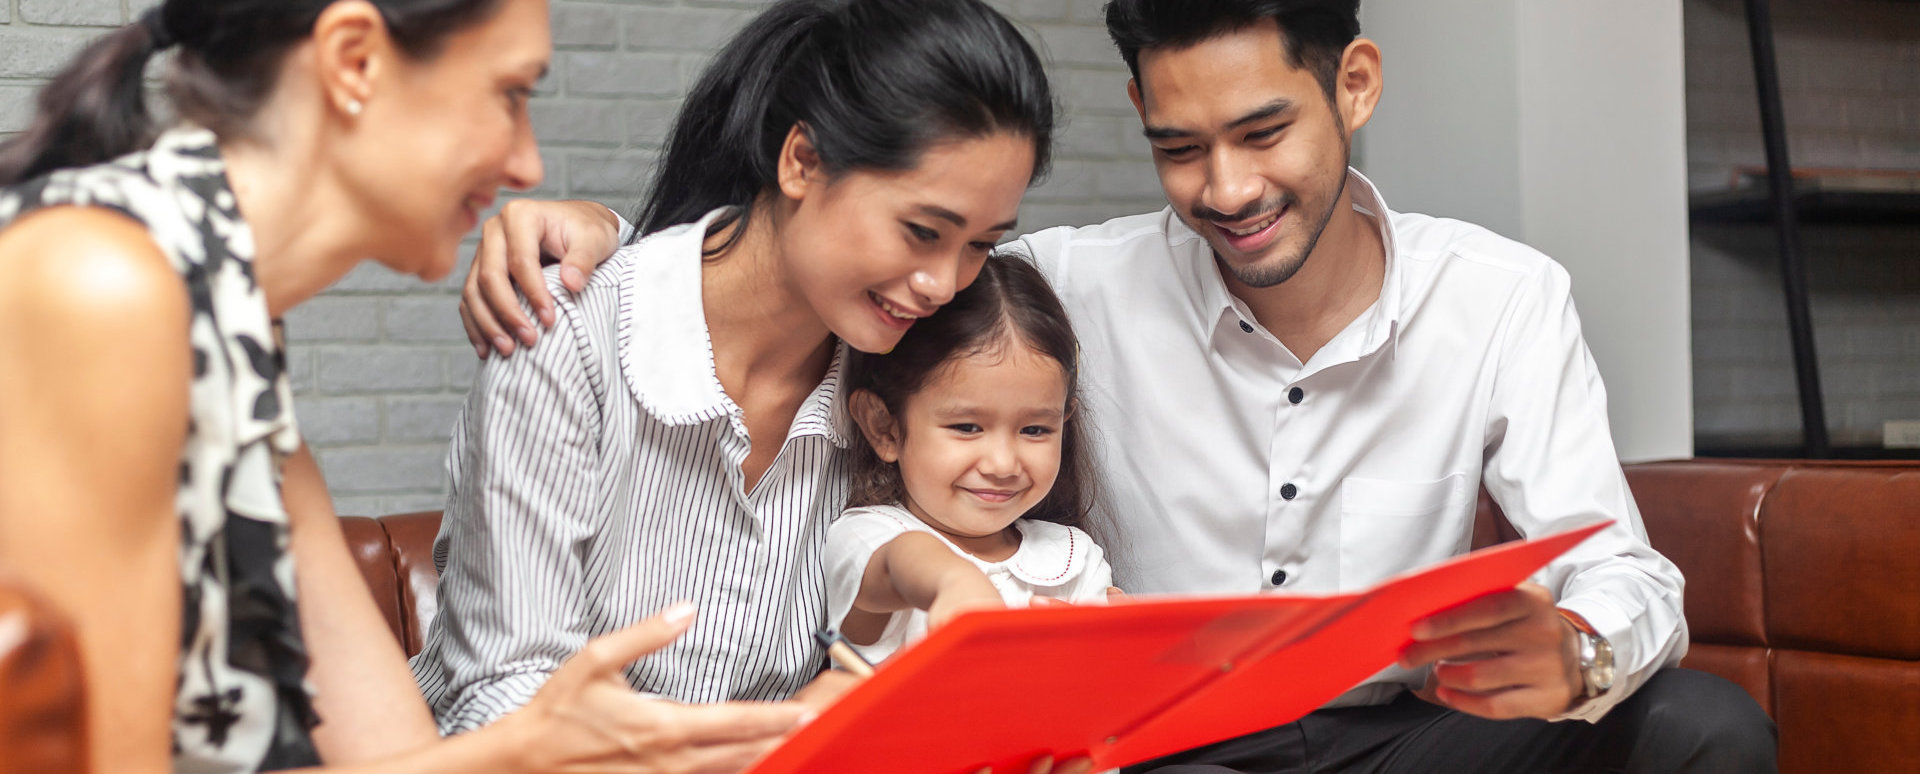 family reading together a book